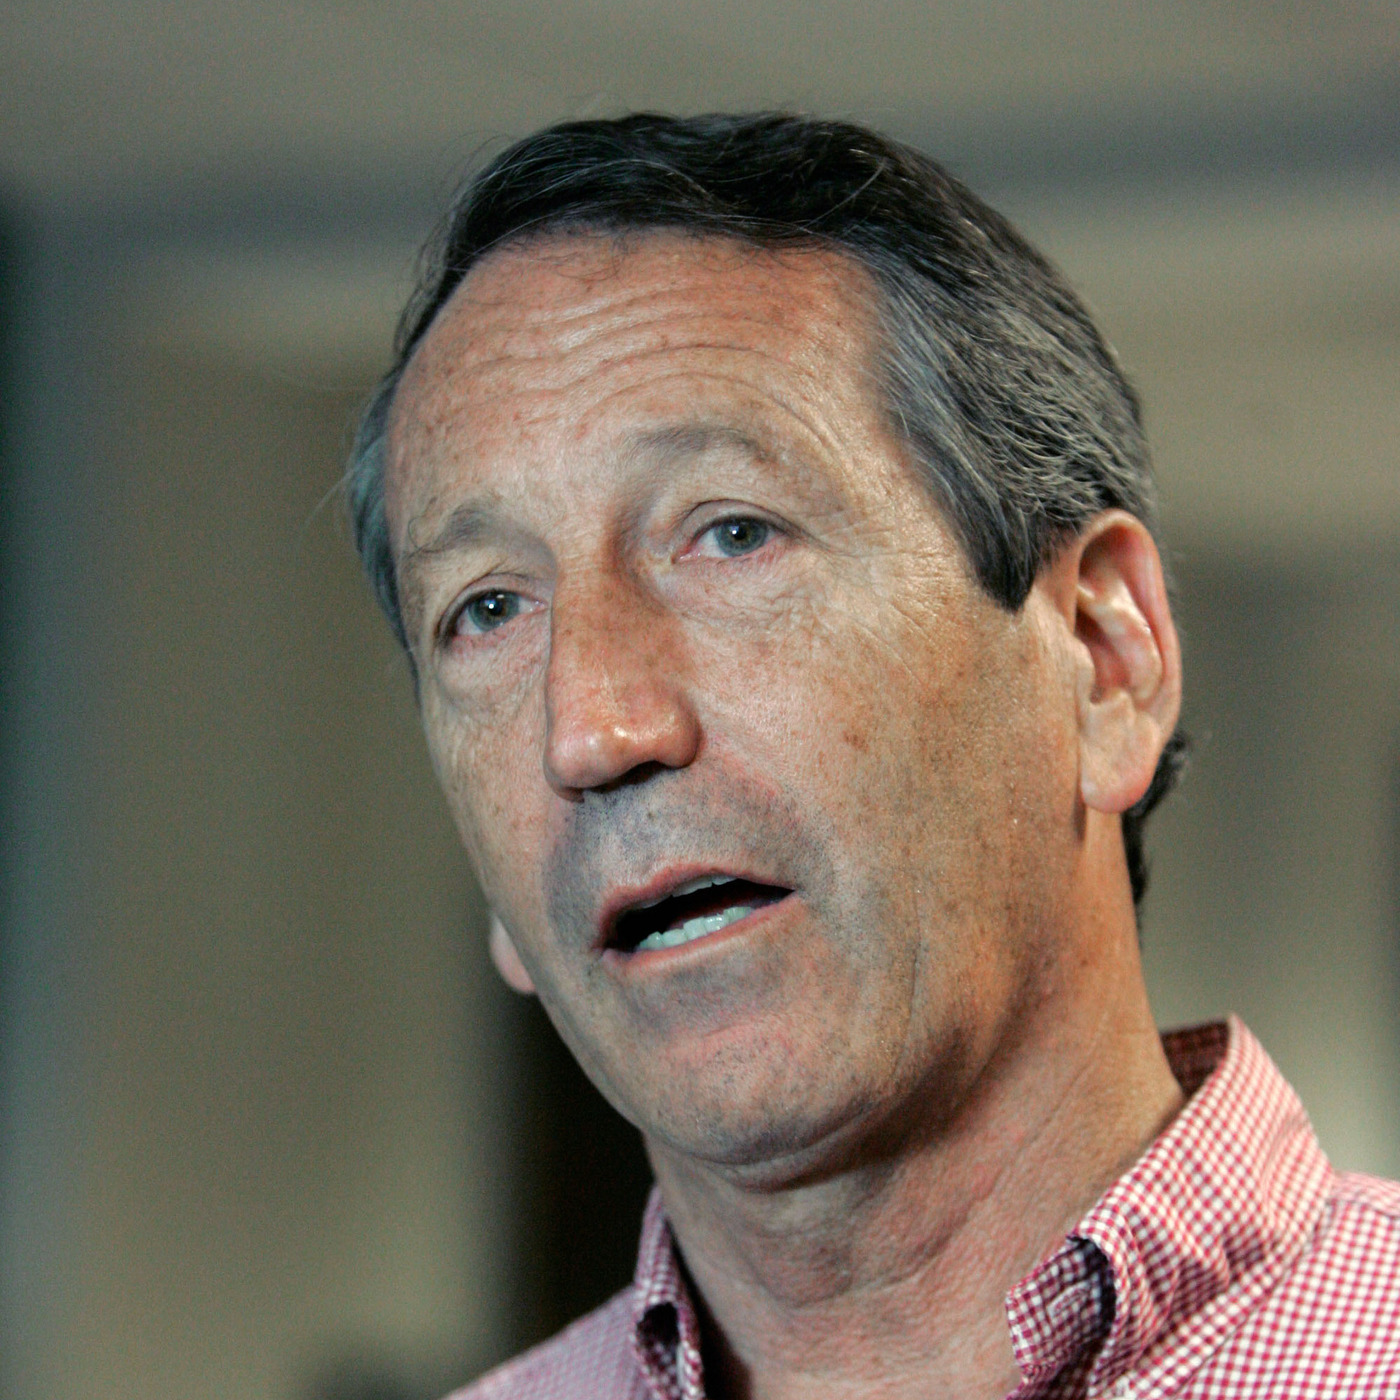 mark sanford Marshall clement mark sanford, jr (born may 28, 1960, in fort lauderdale, fl) is a republican member of the united states house of representatives from south carolina's 1st congressional district he won the seat that was up for special election in early 2013 the seat was vacant due to tim scott's (r) appointment to the united states senate sanford sought another term in the june 12.